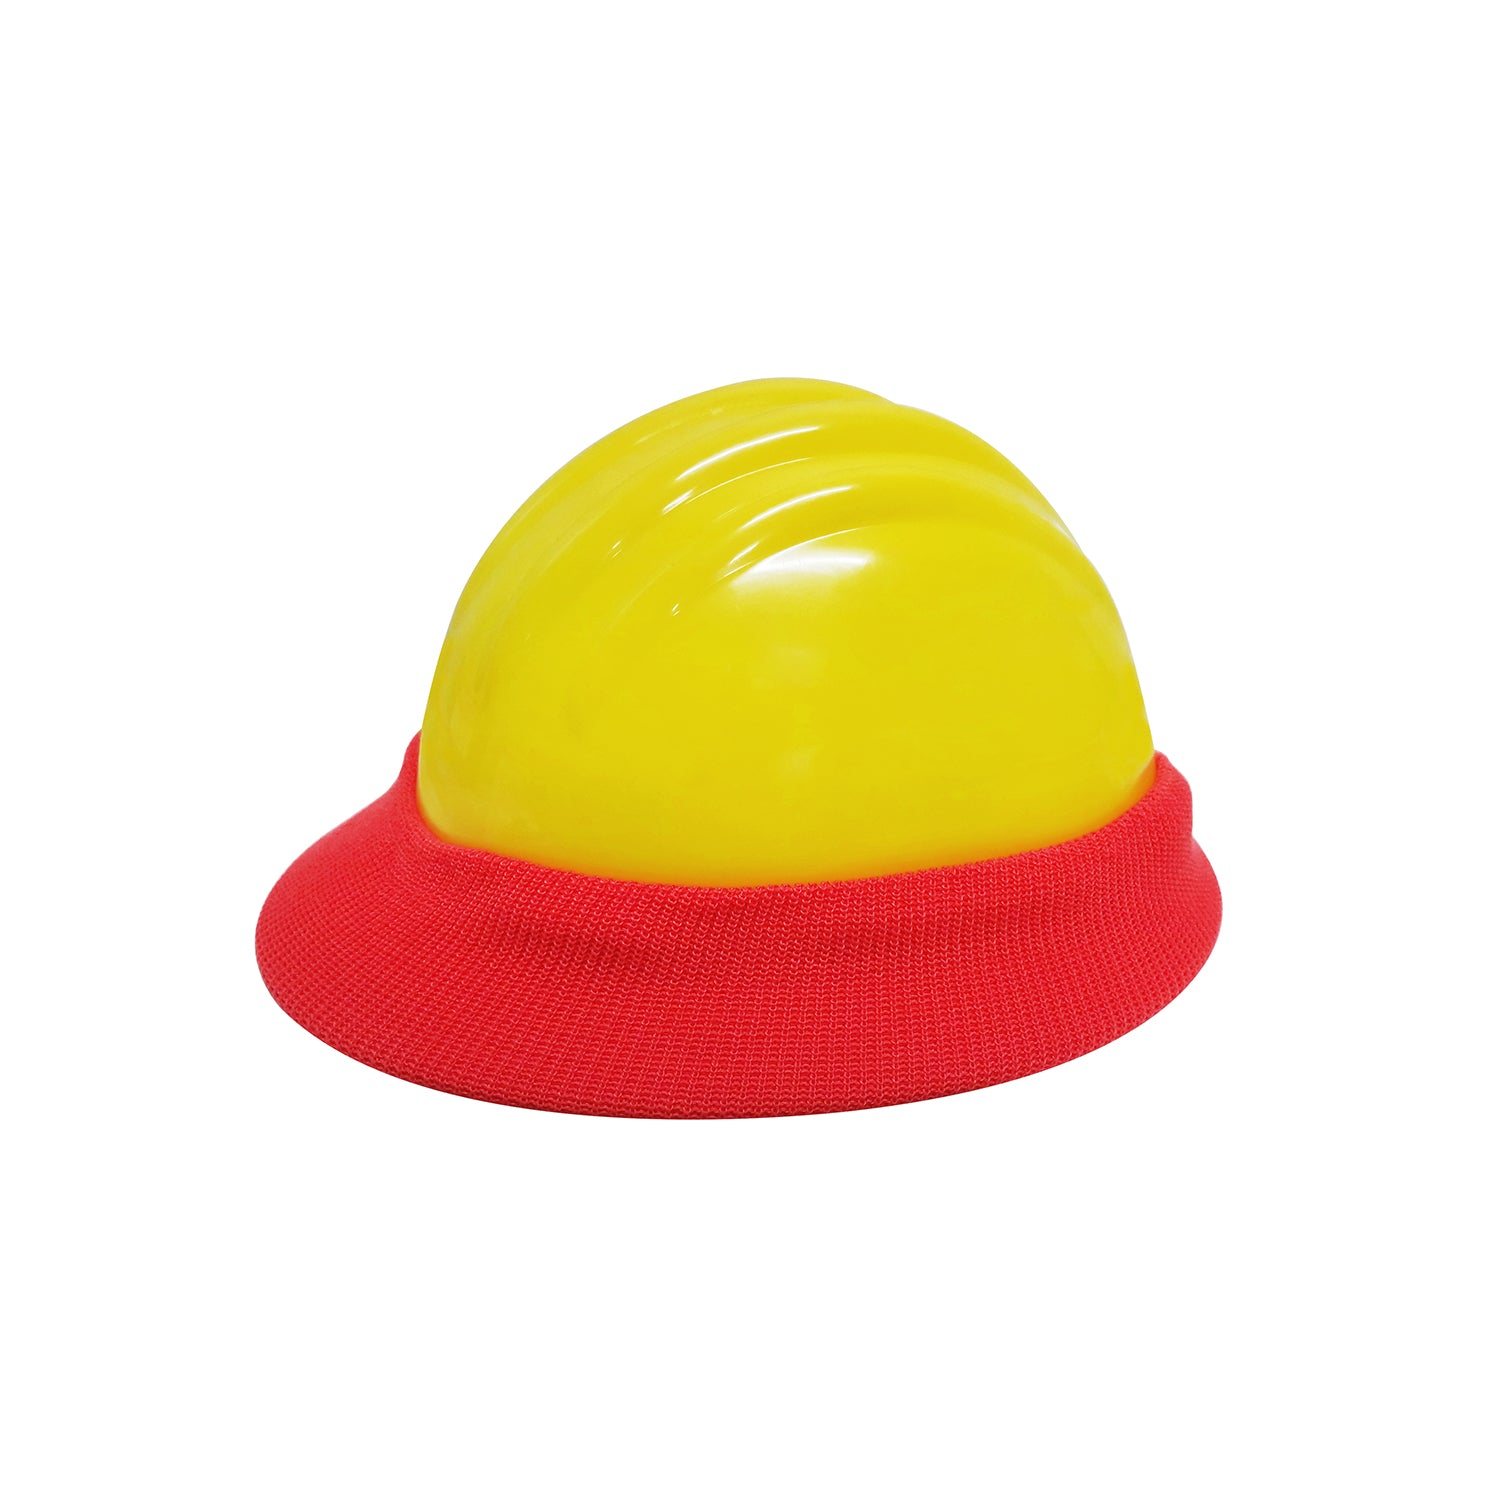 Knit Hard Hat Winter Liner - Red -Safety- eGPS Solutions Inc.